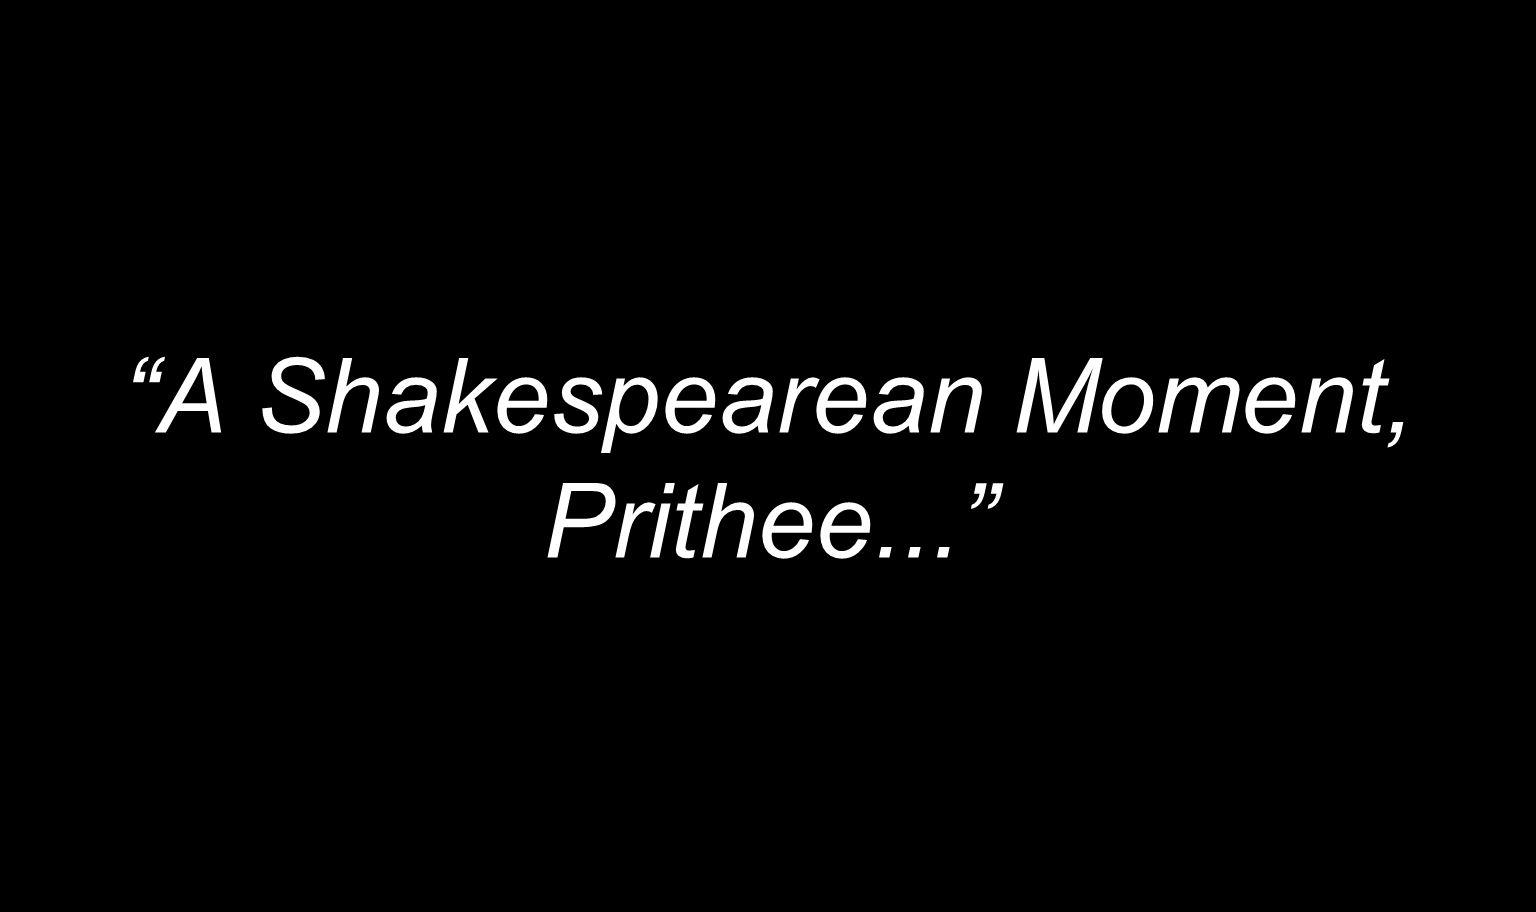 A Shakespearean Moment, Prithee...